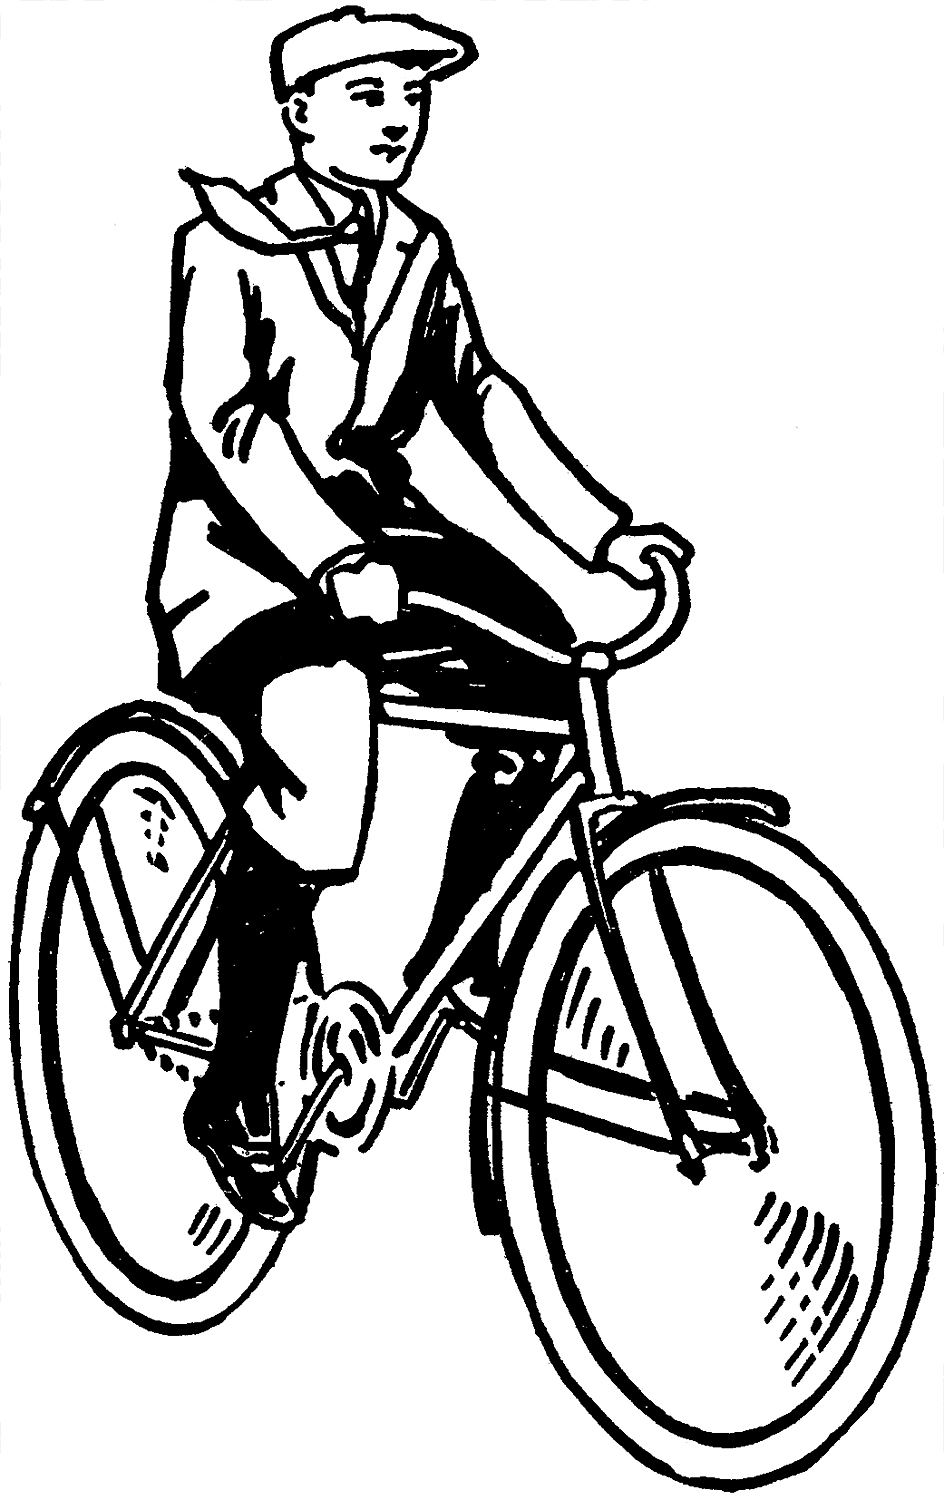 Bikes blessings cliparts picture free stock 15 Bicycle Clip Art Images! - The Graphics Fairy picture free stock